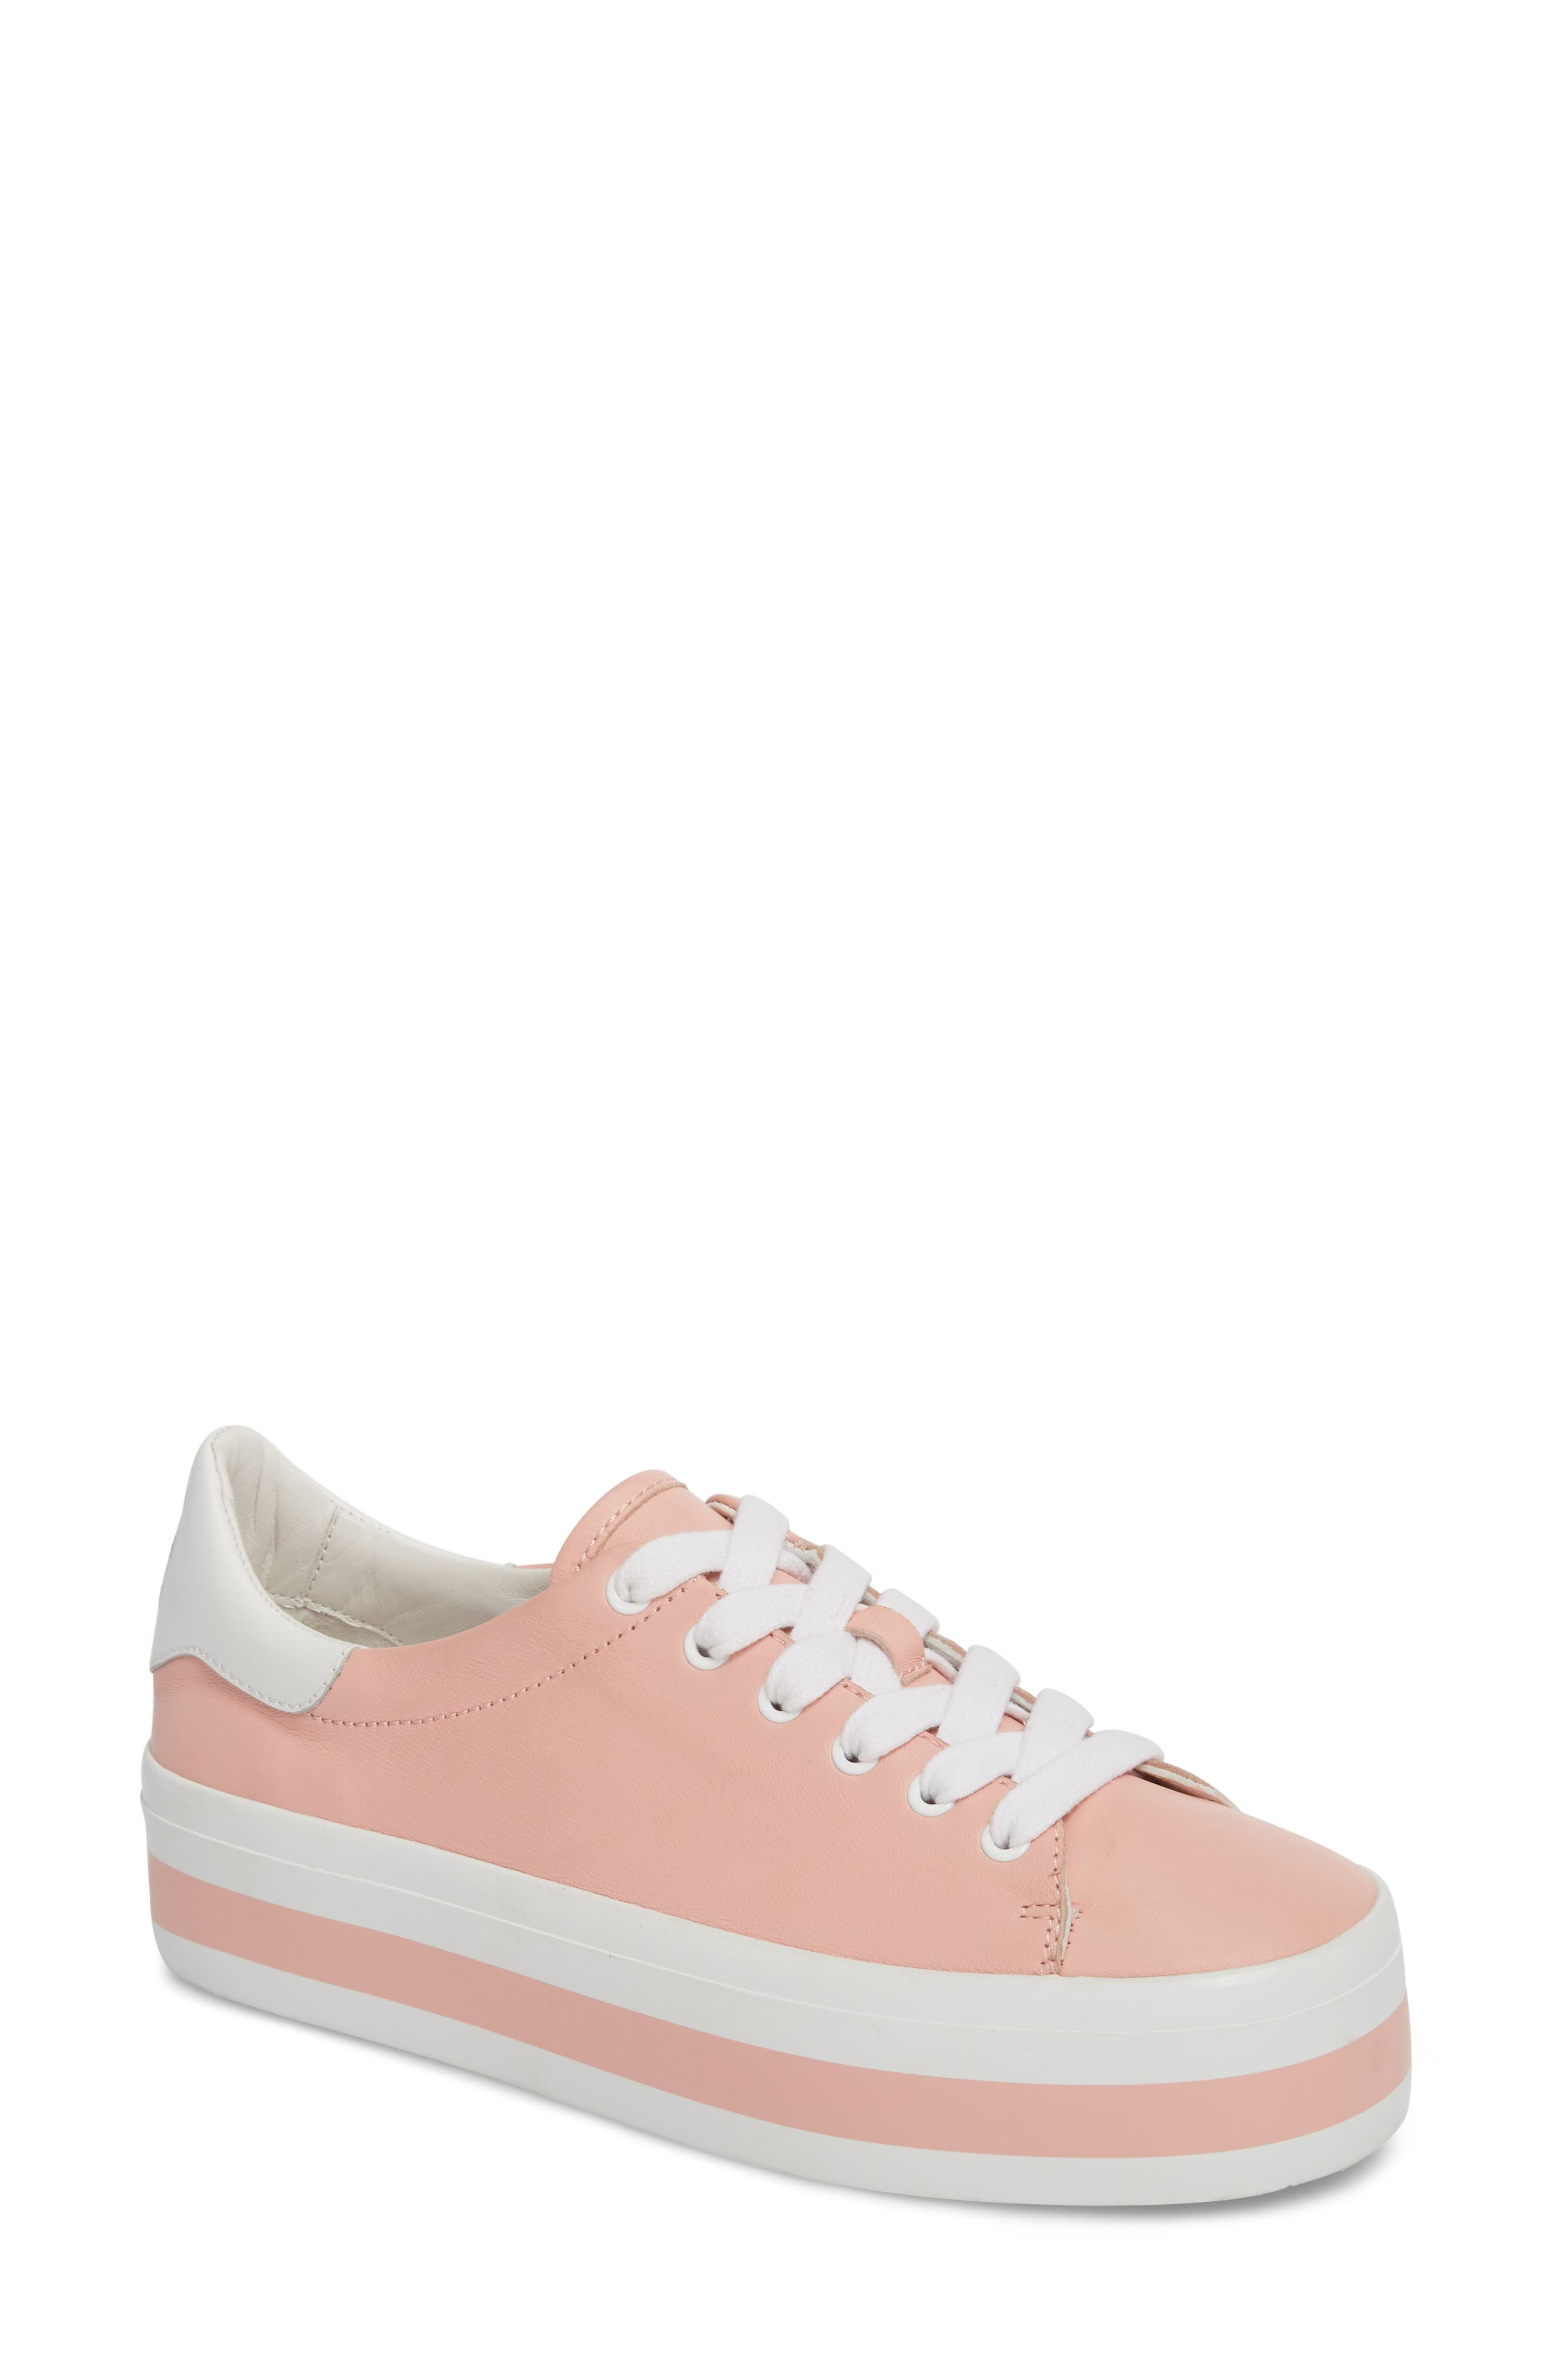 Ezra Flatform Sneaker,                             Main thumbnail 1, color,                             Perfect Pink / Pure White